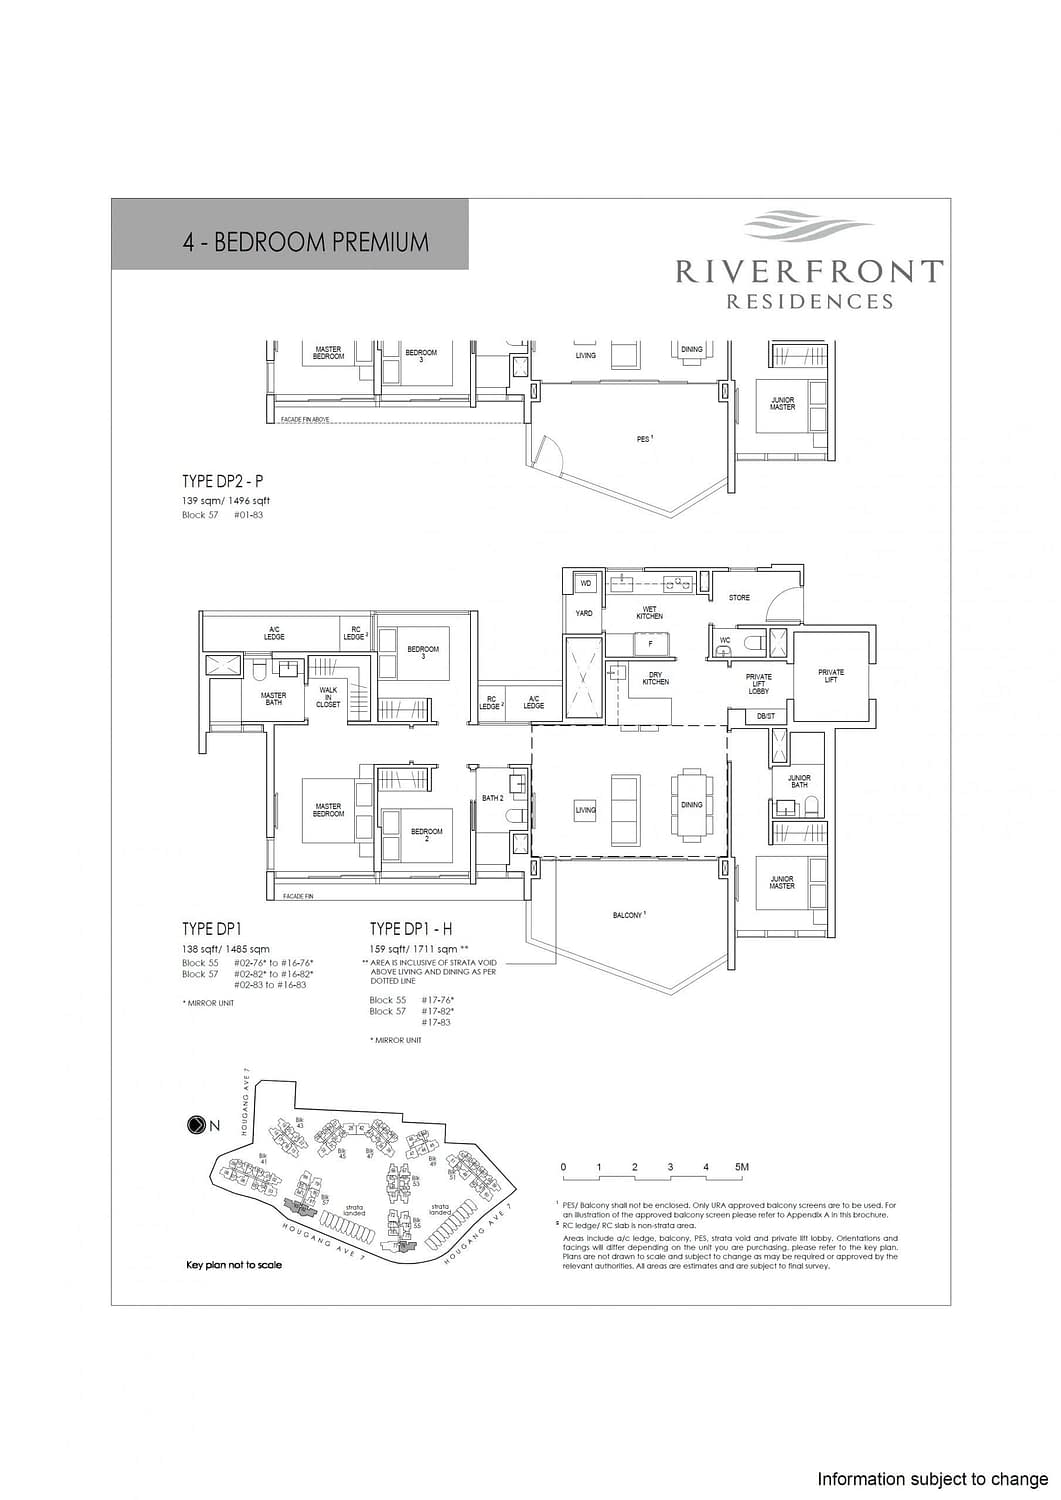 Riverfront Residences Riverfront Residences Floorplan DP1 scaled